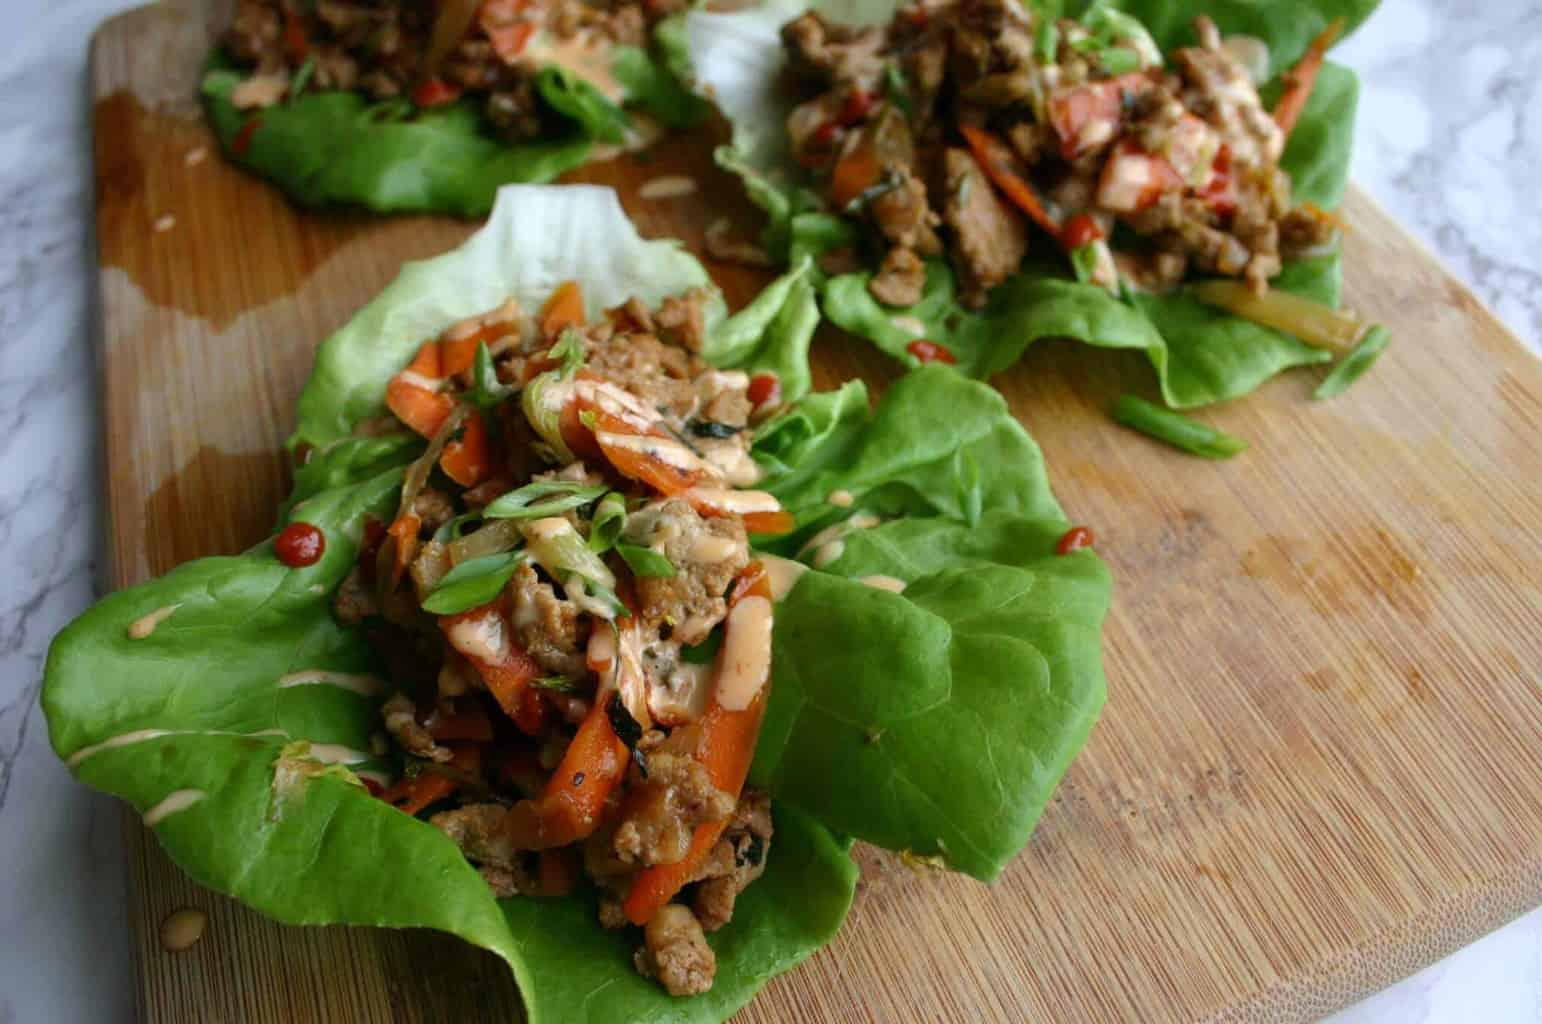 PF Changs Copycat Lettuce Wraps! Healthy Asian Ground Turkey Lettuce Wraps.